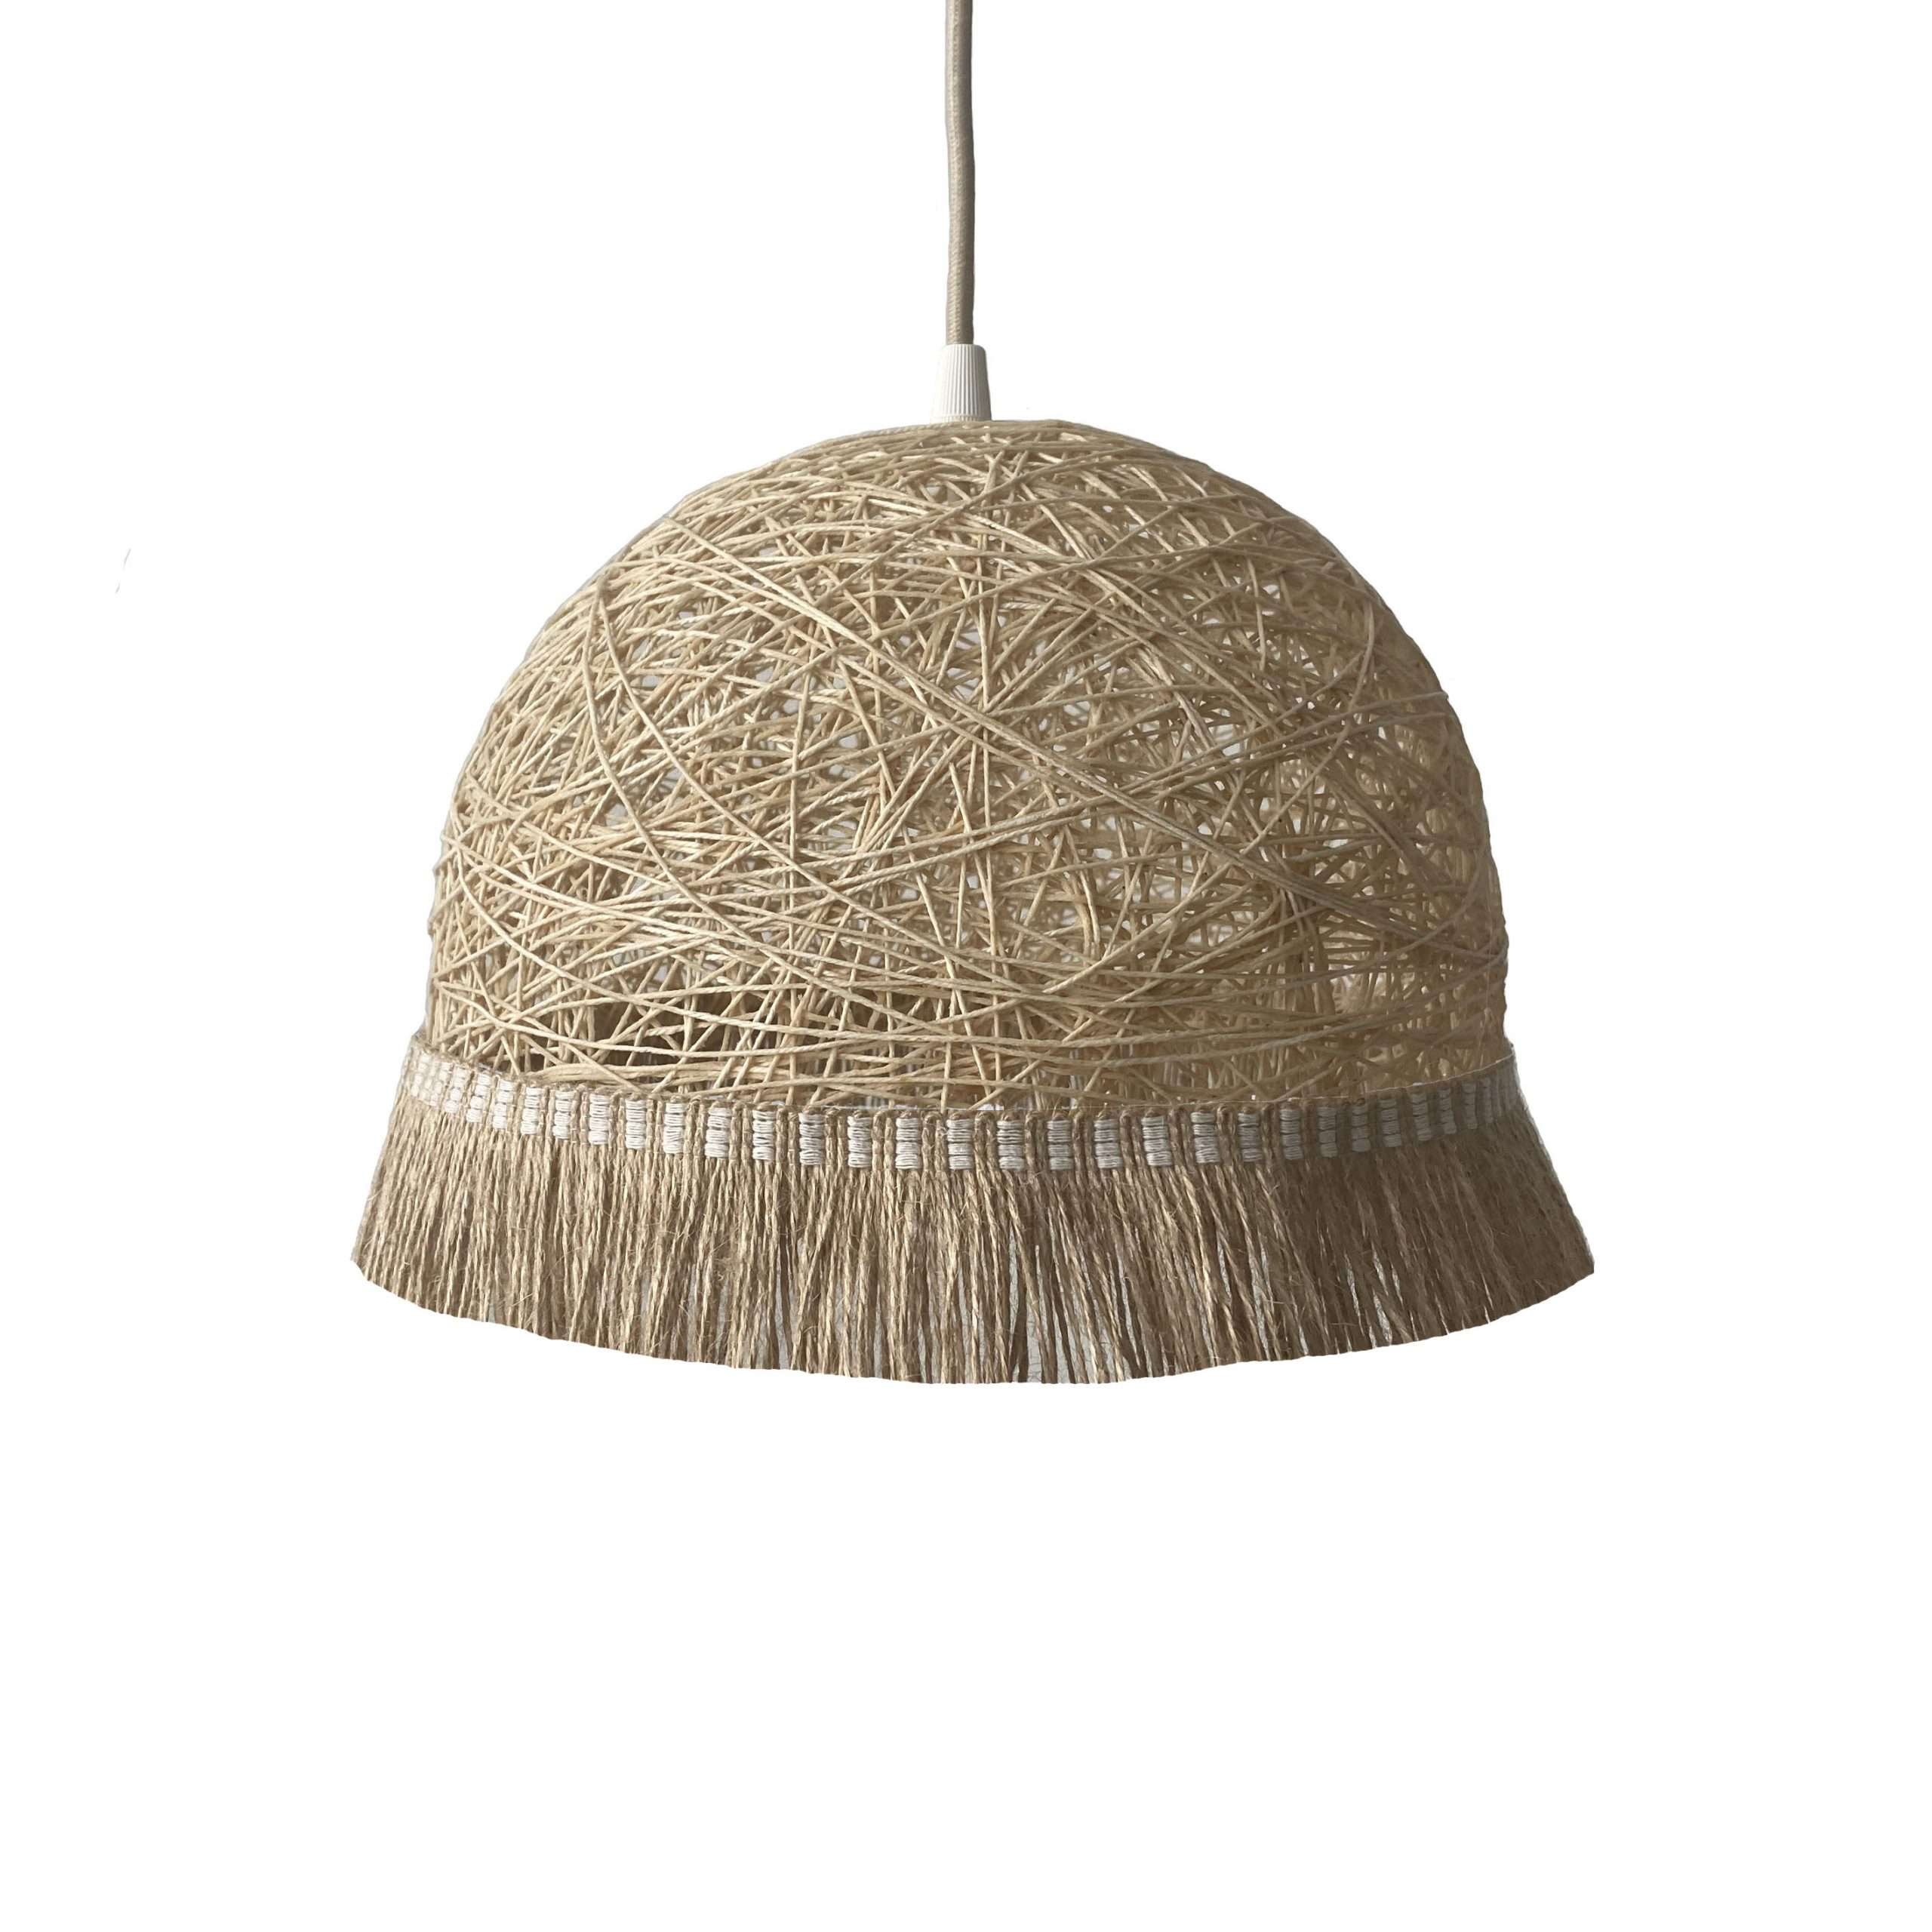 Modern pendant light - FRINGES